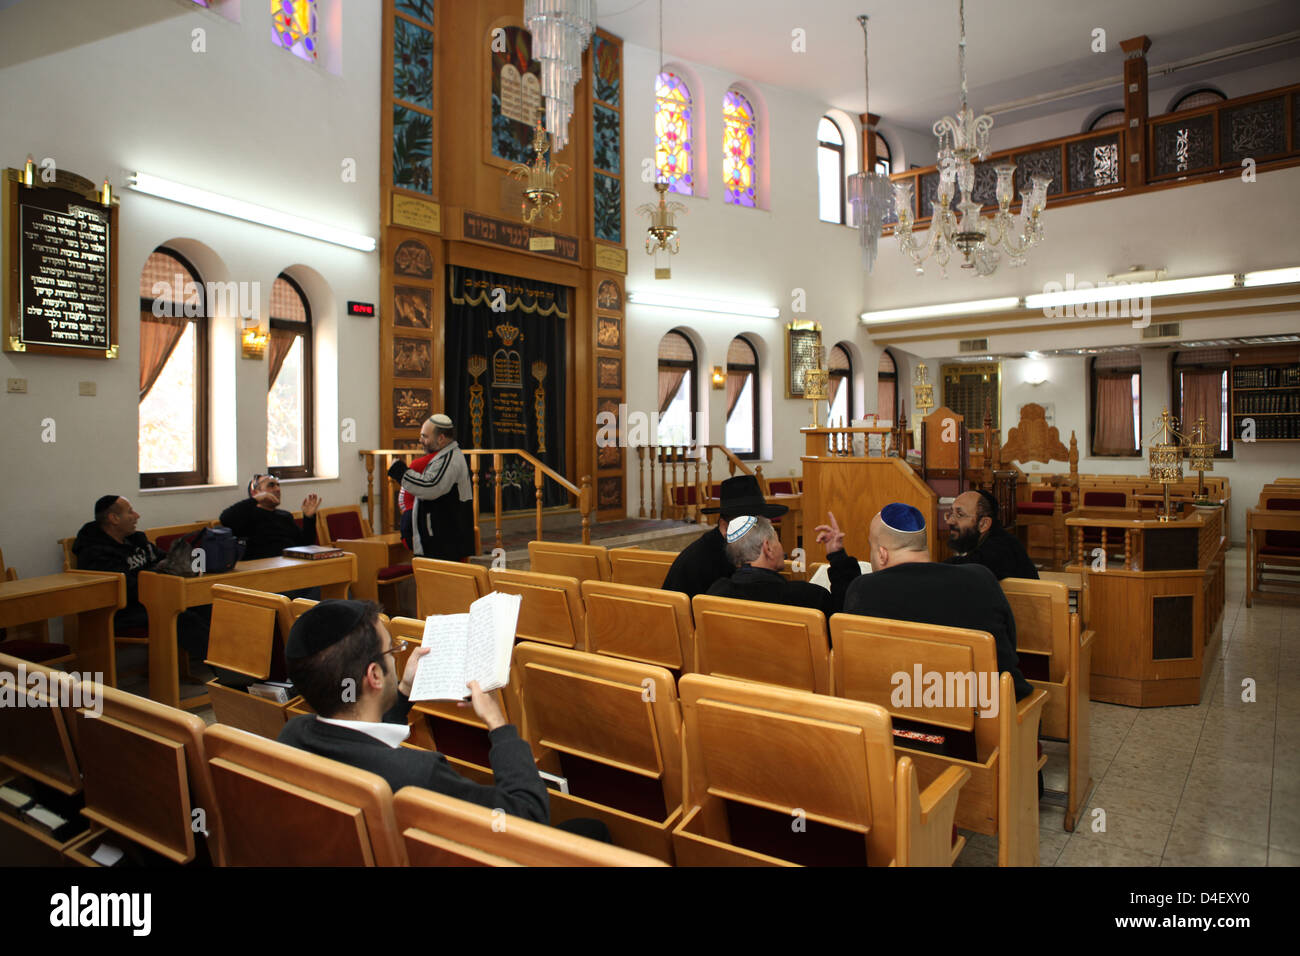 Interior of a synagogue - Stock Image